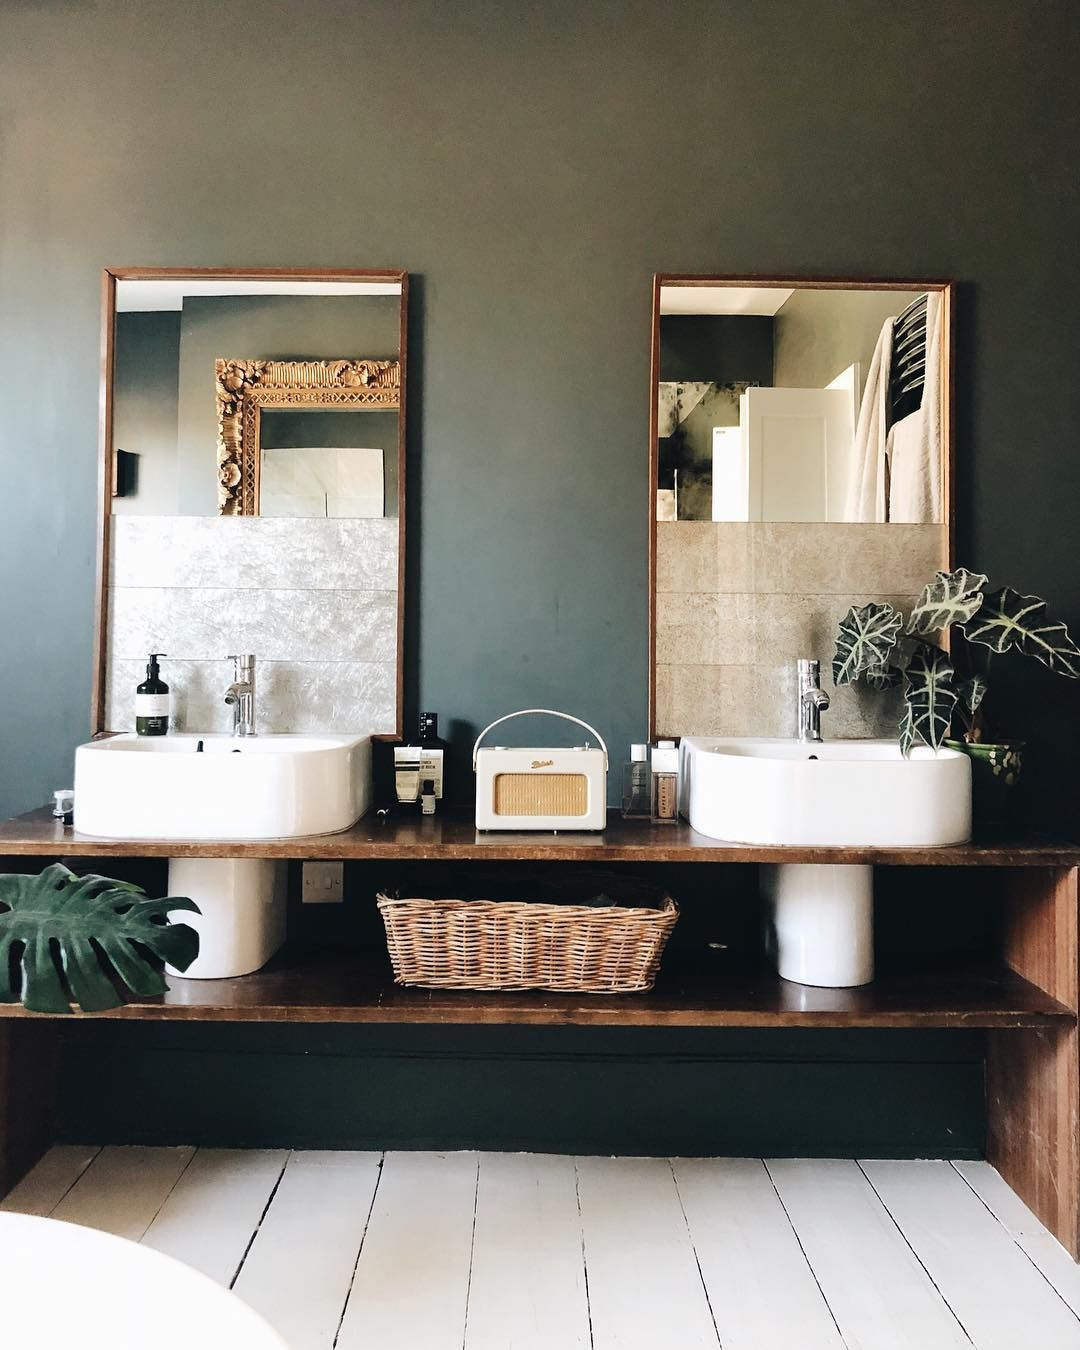 Kate Watson Smyth Mad About The House Instagram Photos And Videos Bathroom Decor Bathrooms Remodel Home Decor